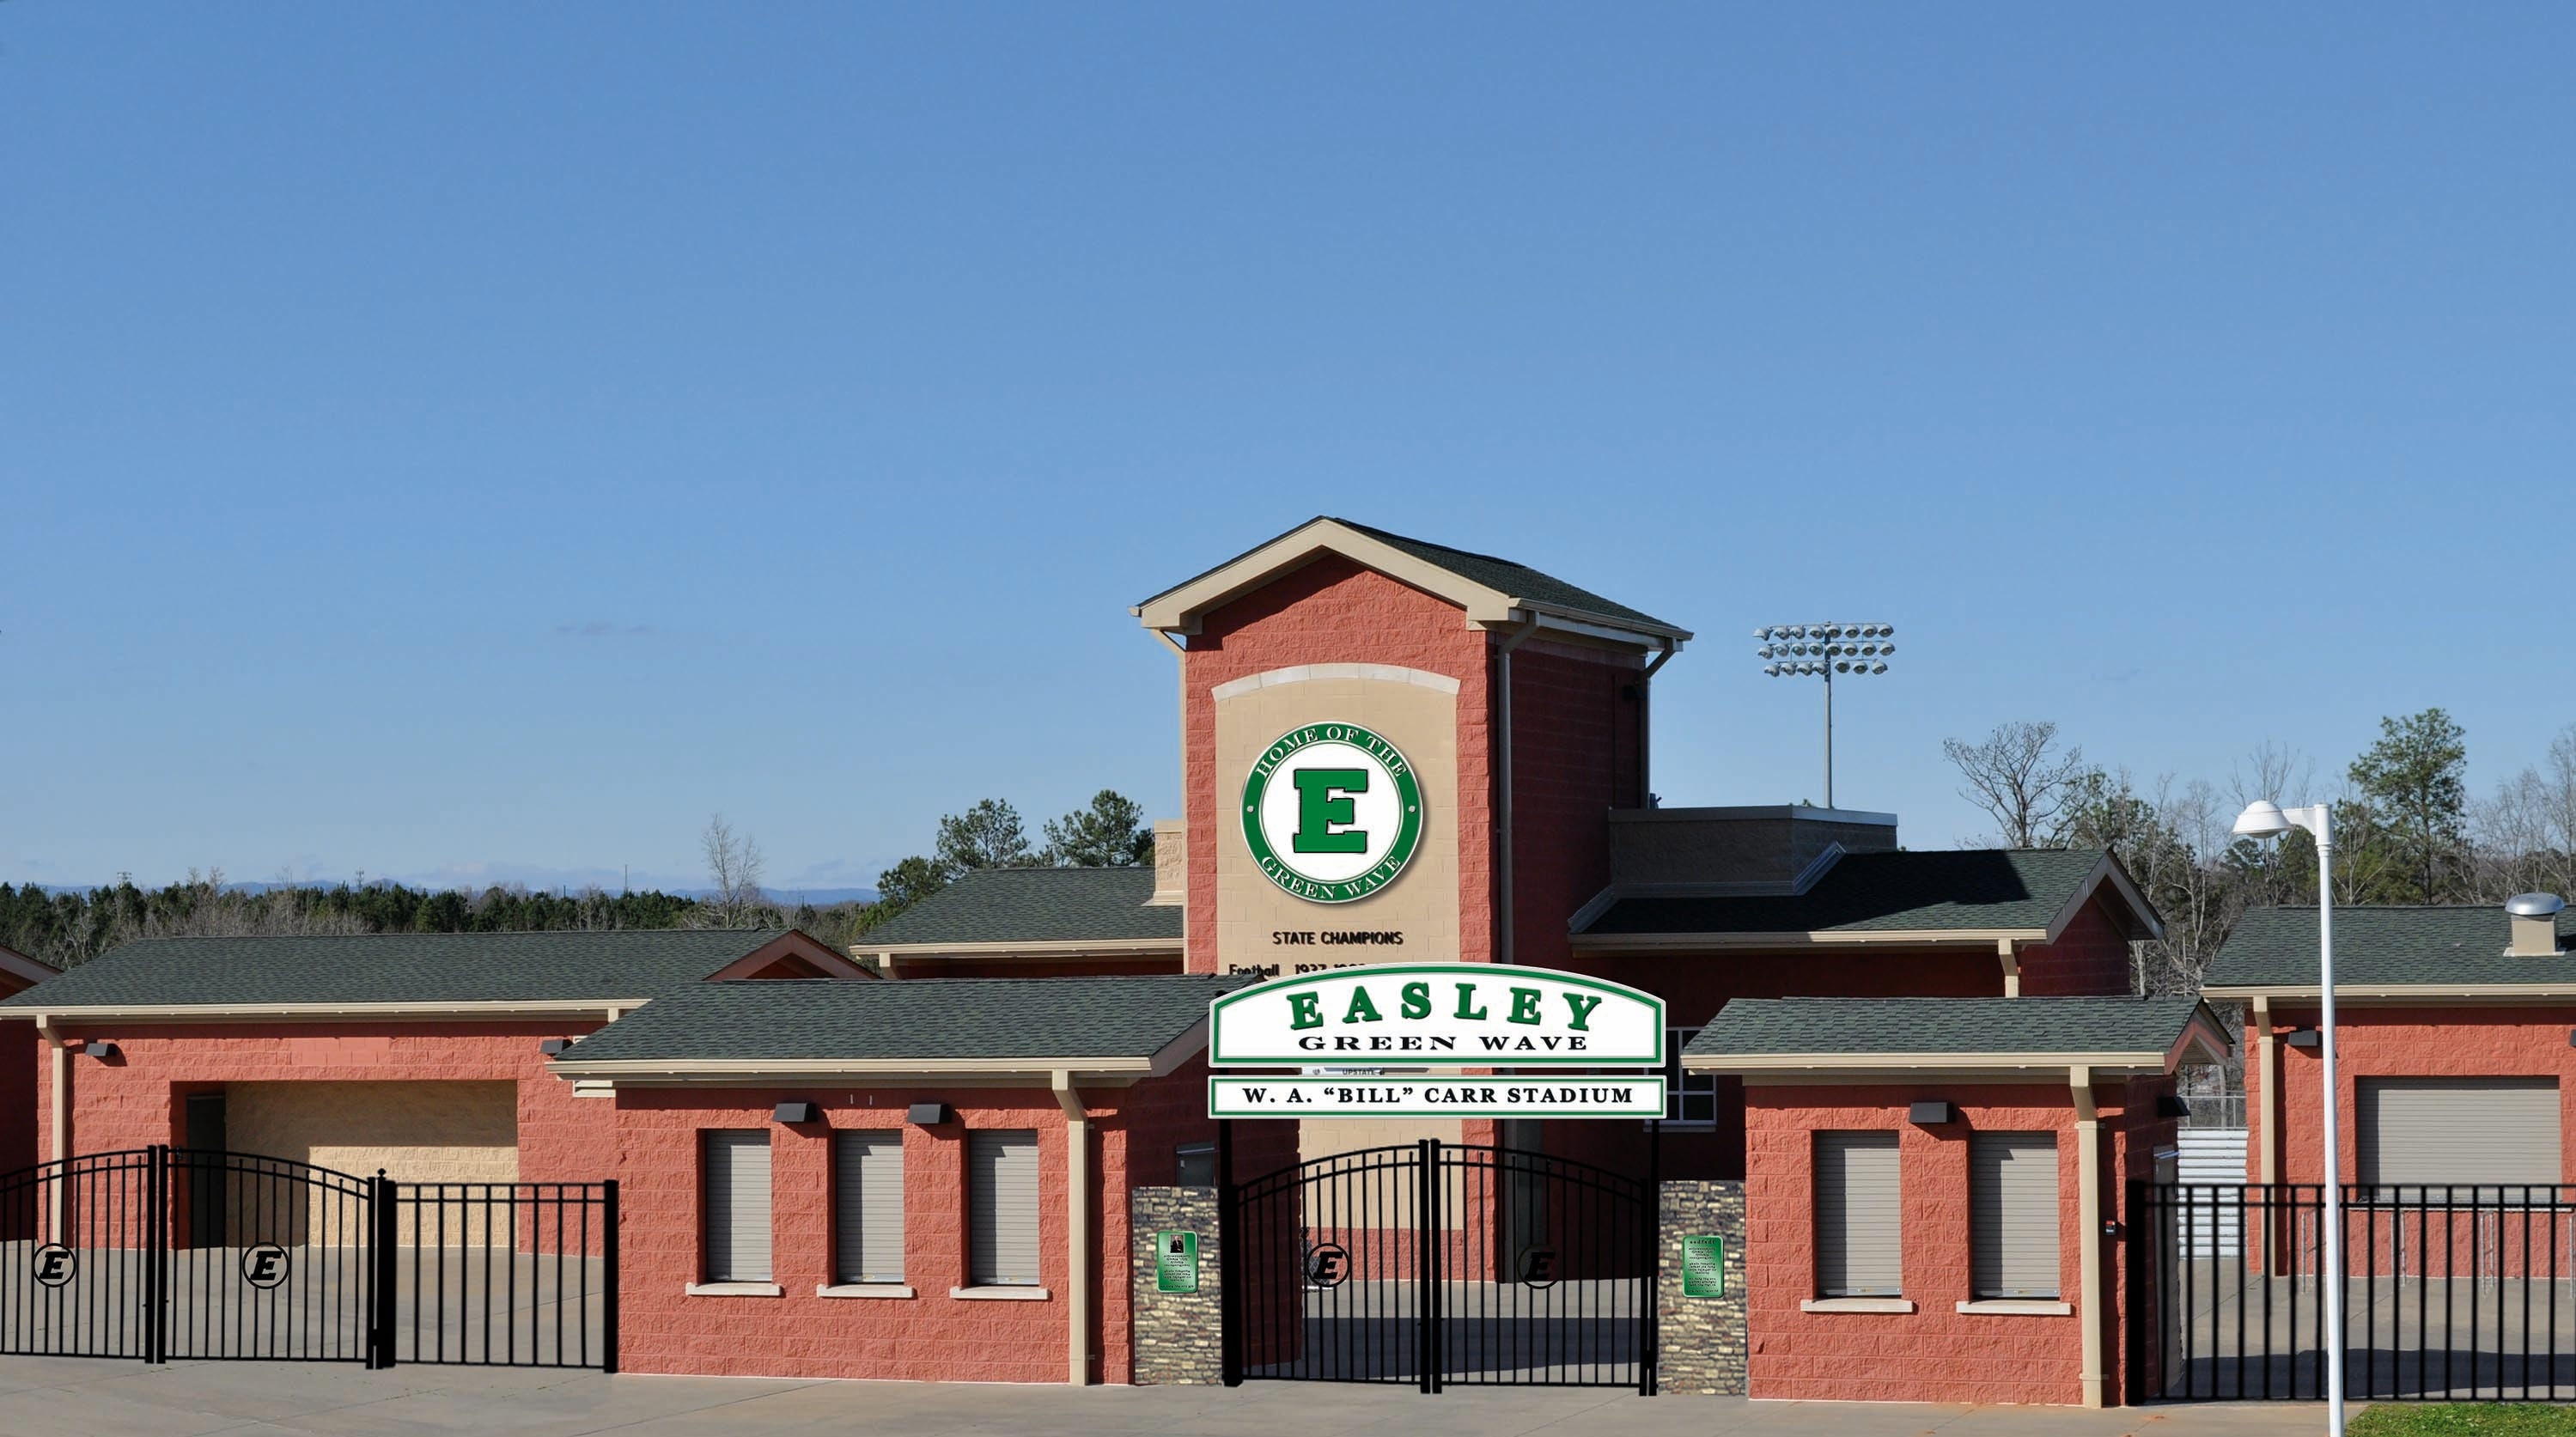 Easley to dedicate football stadium in honor of former coach, mayor Bill Carr